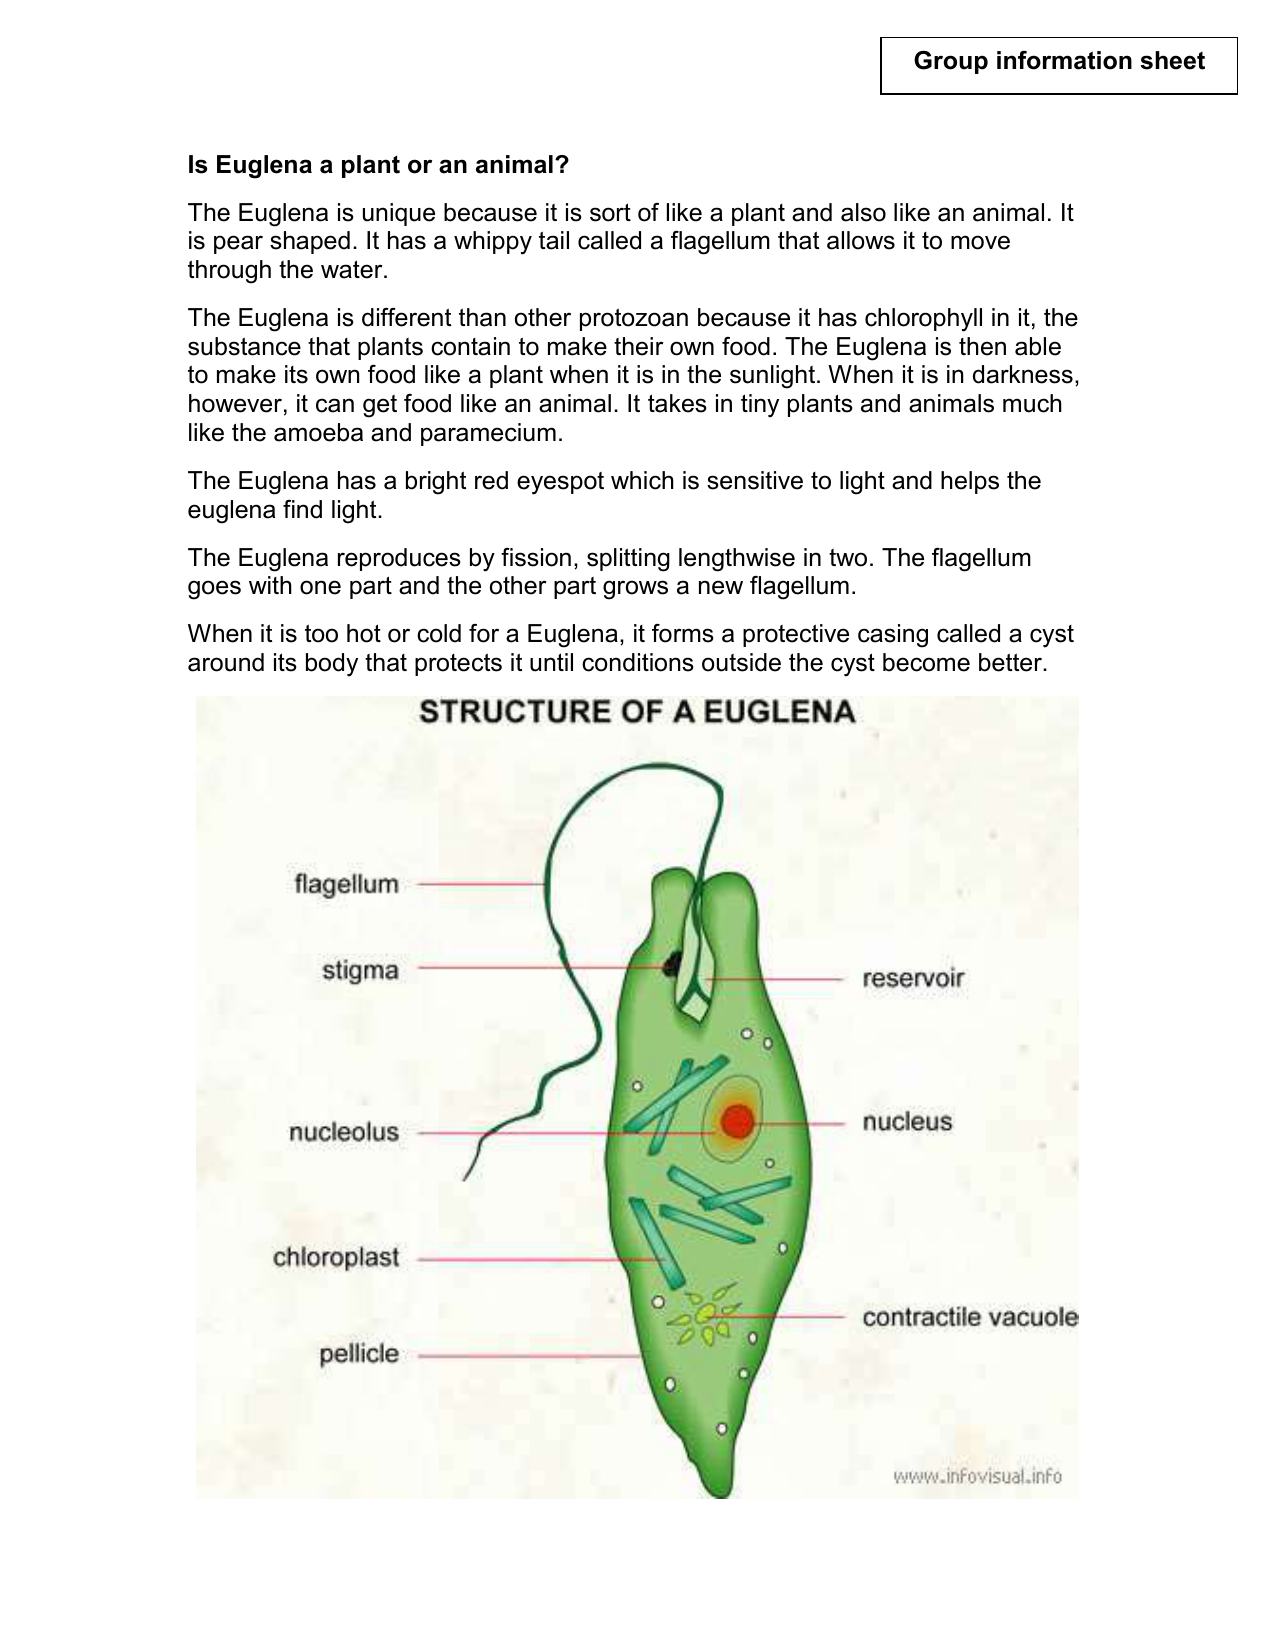 Is euglena a plant or animal ccuart Image collections